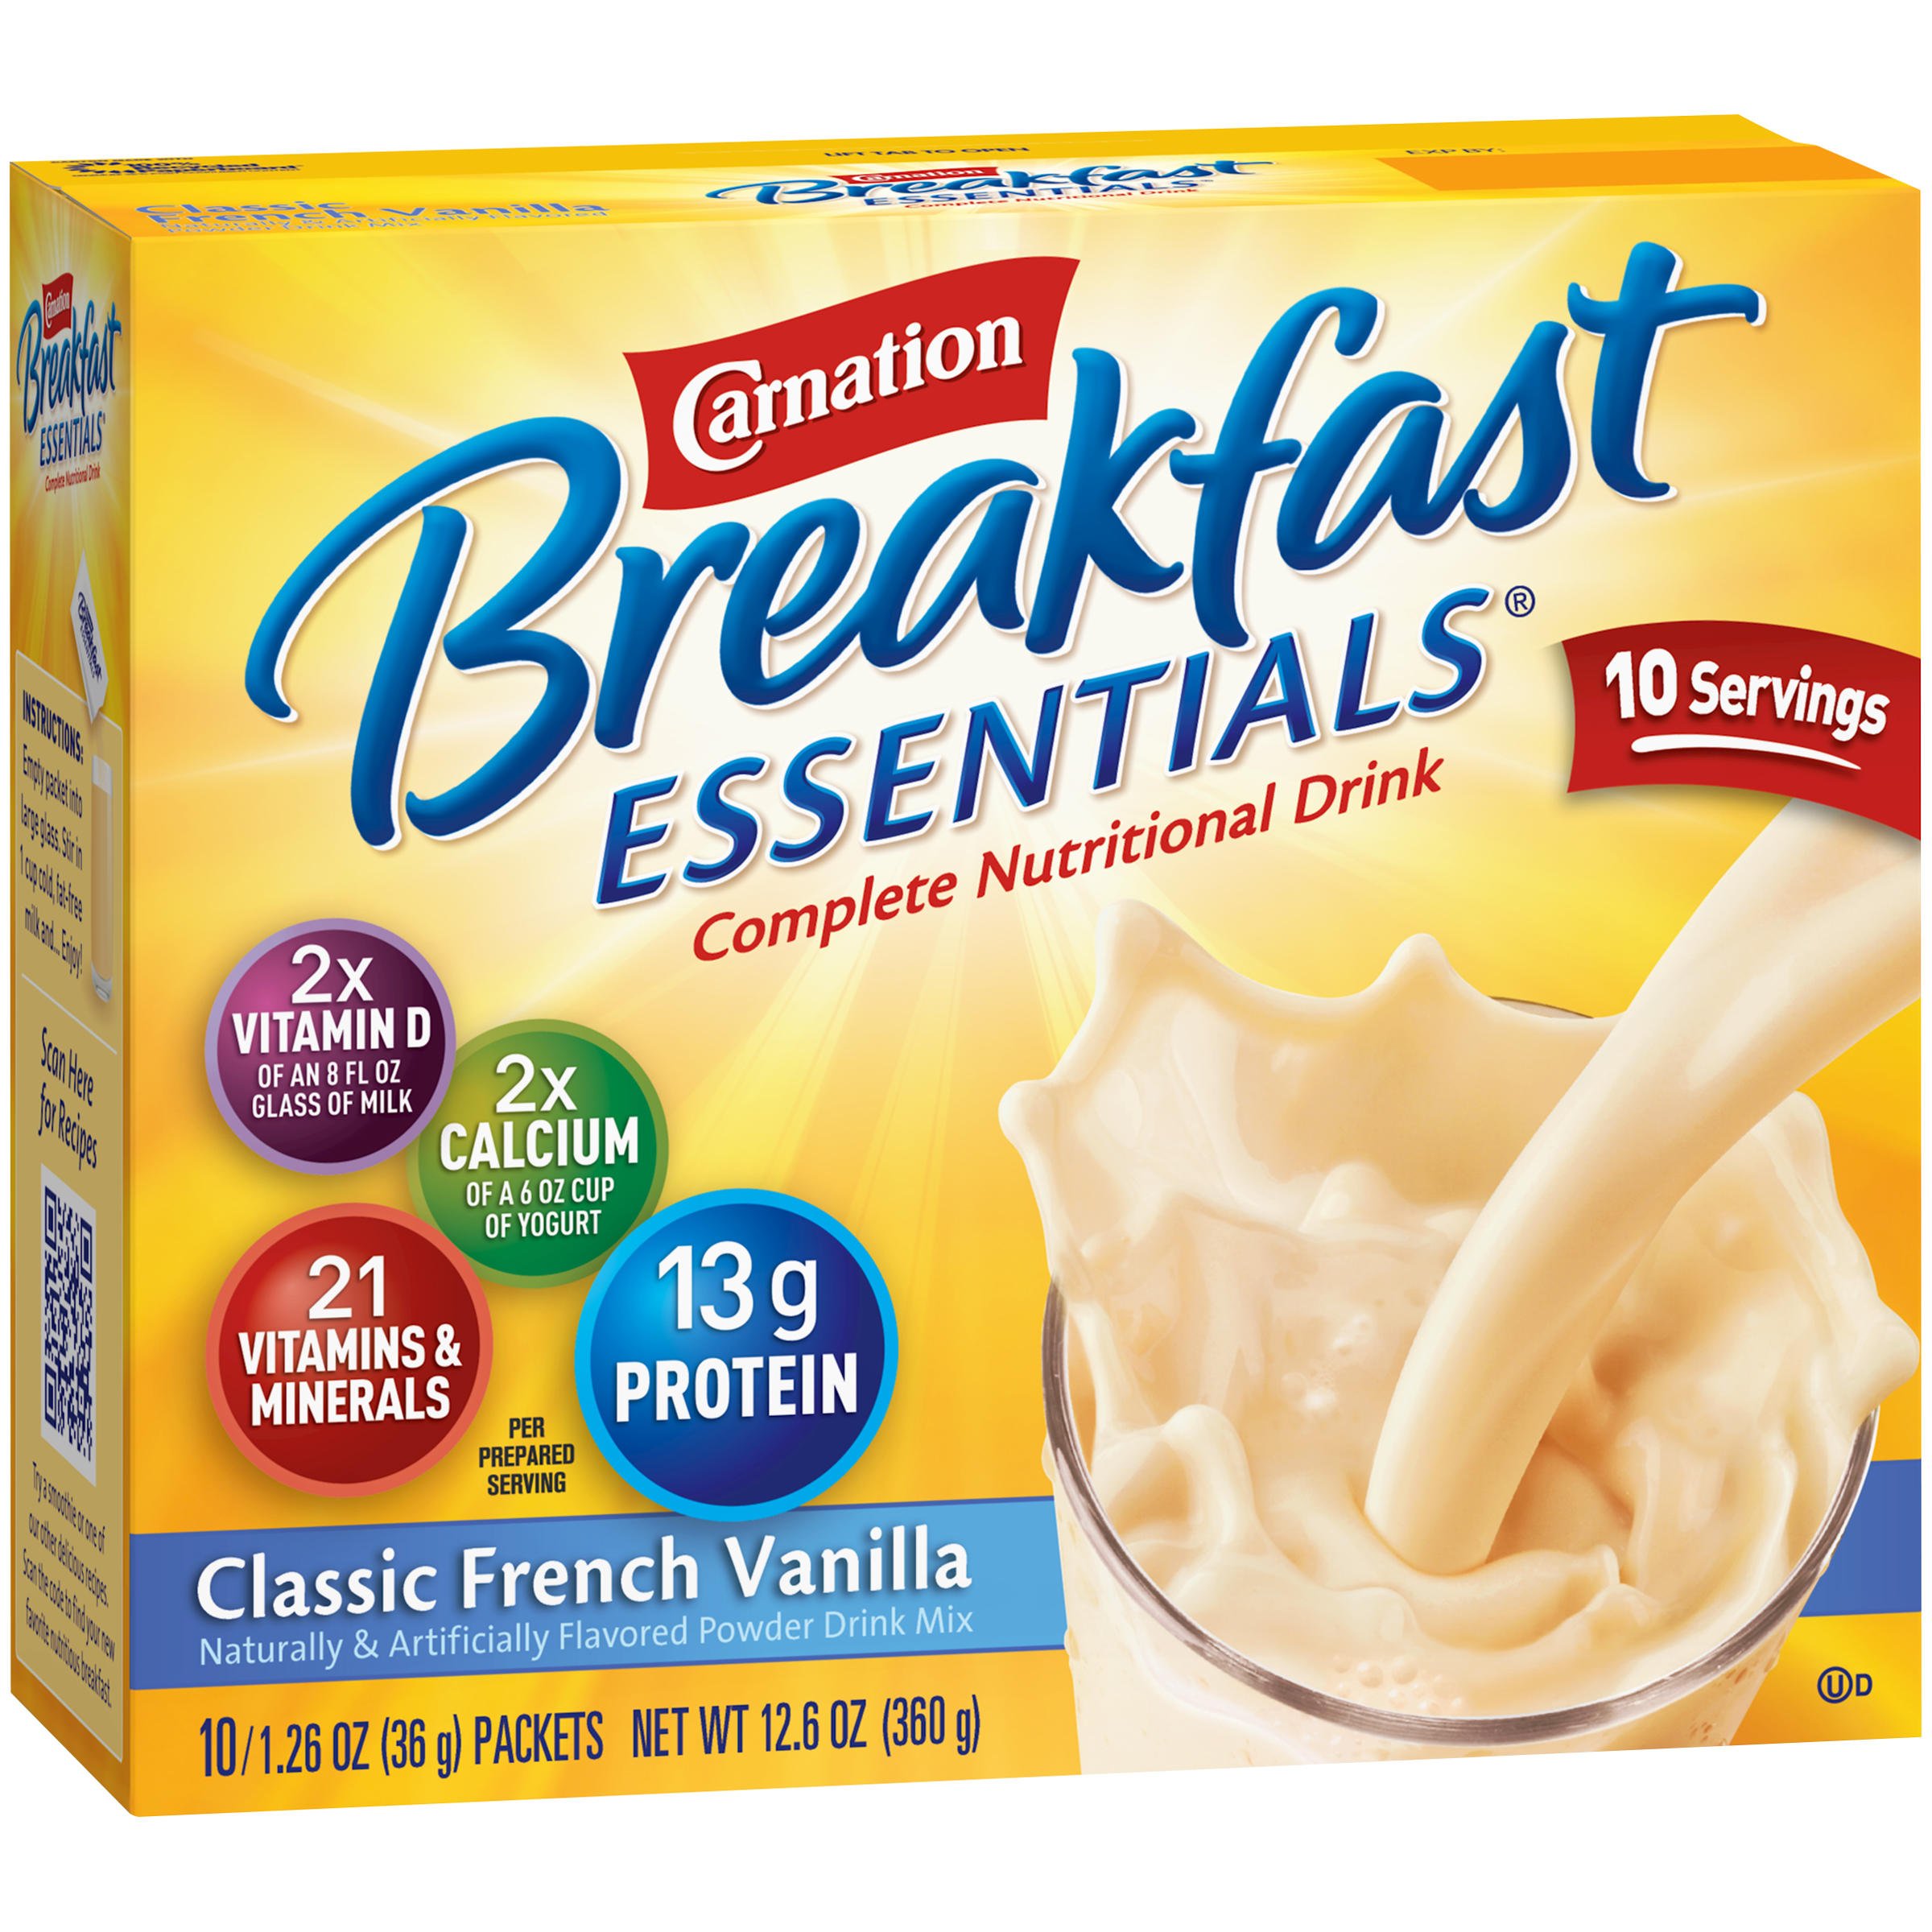 Carnation Breakfast Essentials�� Classic French Vanilla Complete Nutritional Drink Mix, 1.26 oz, 10 count